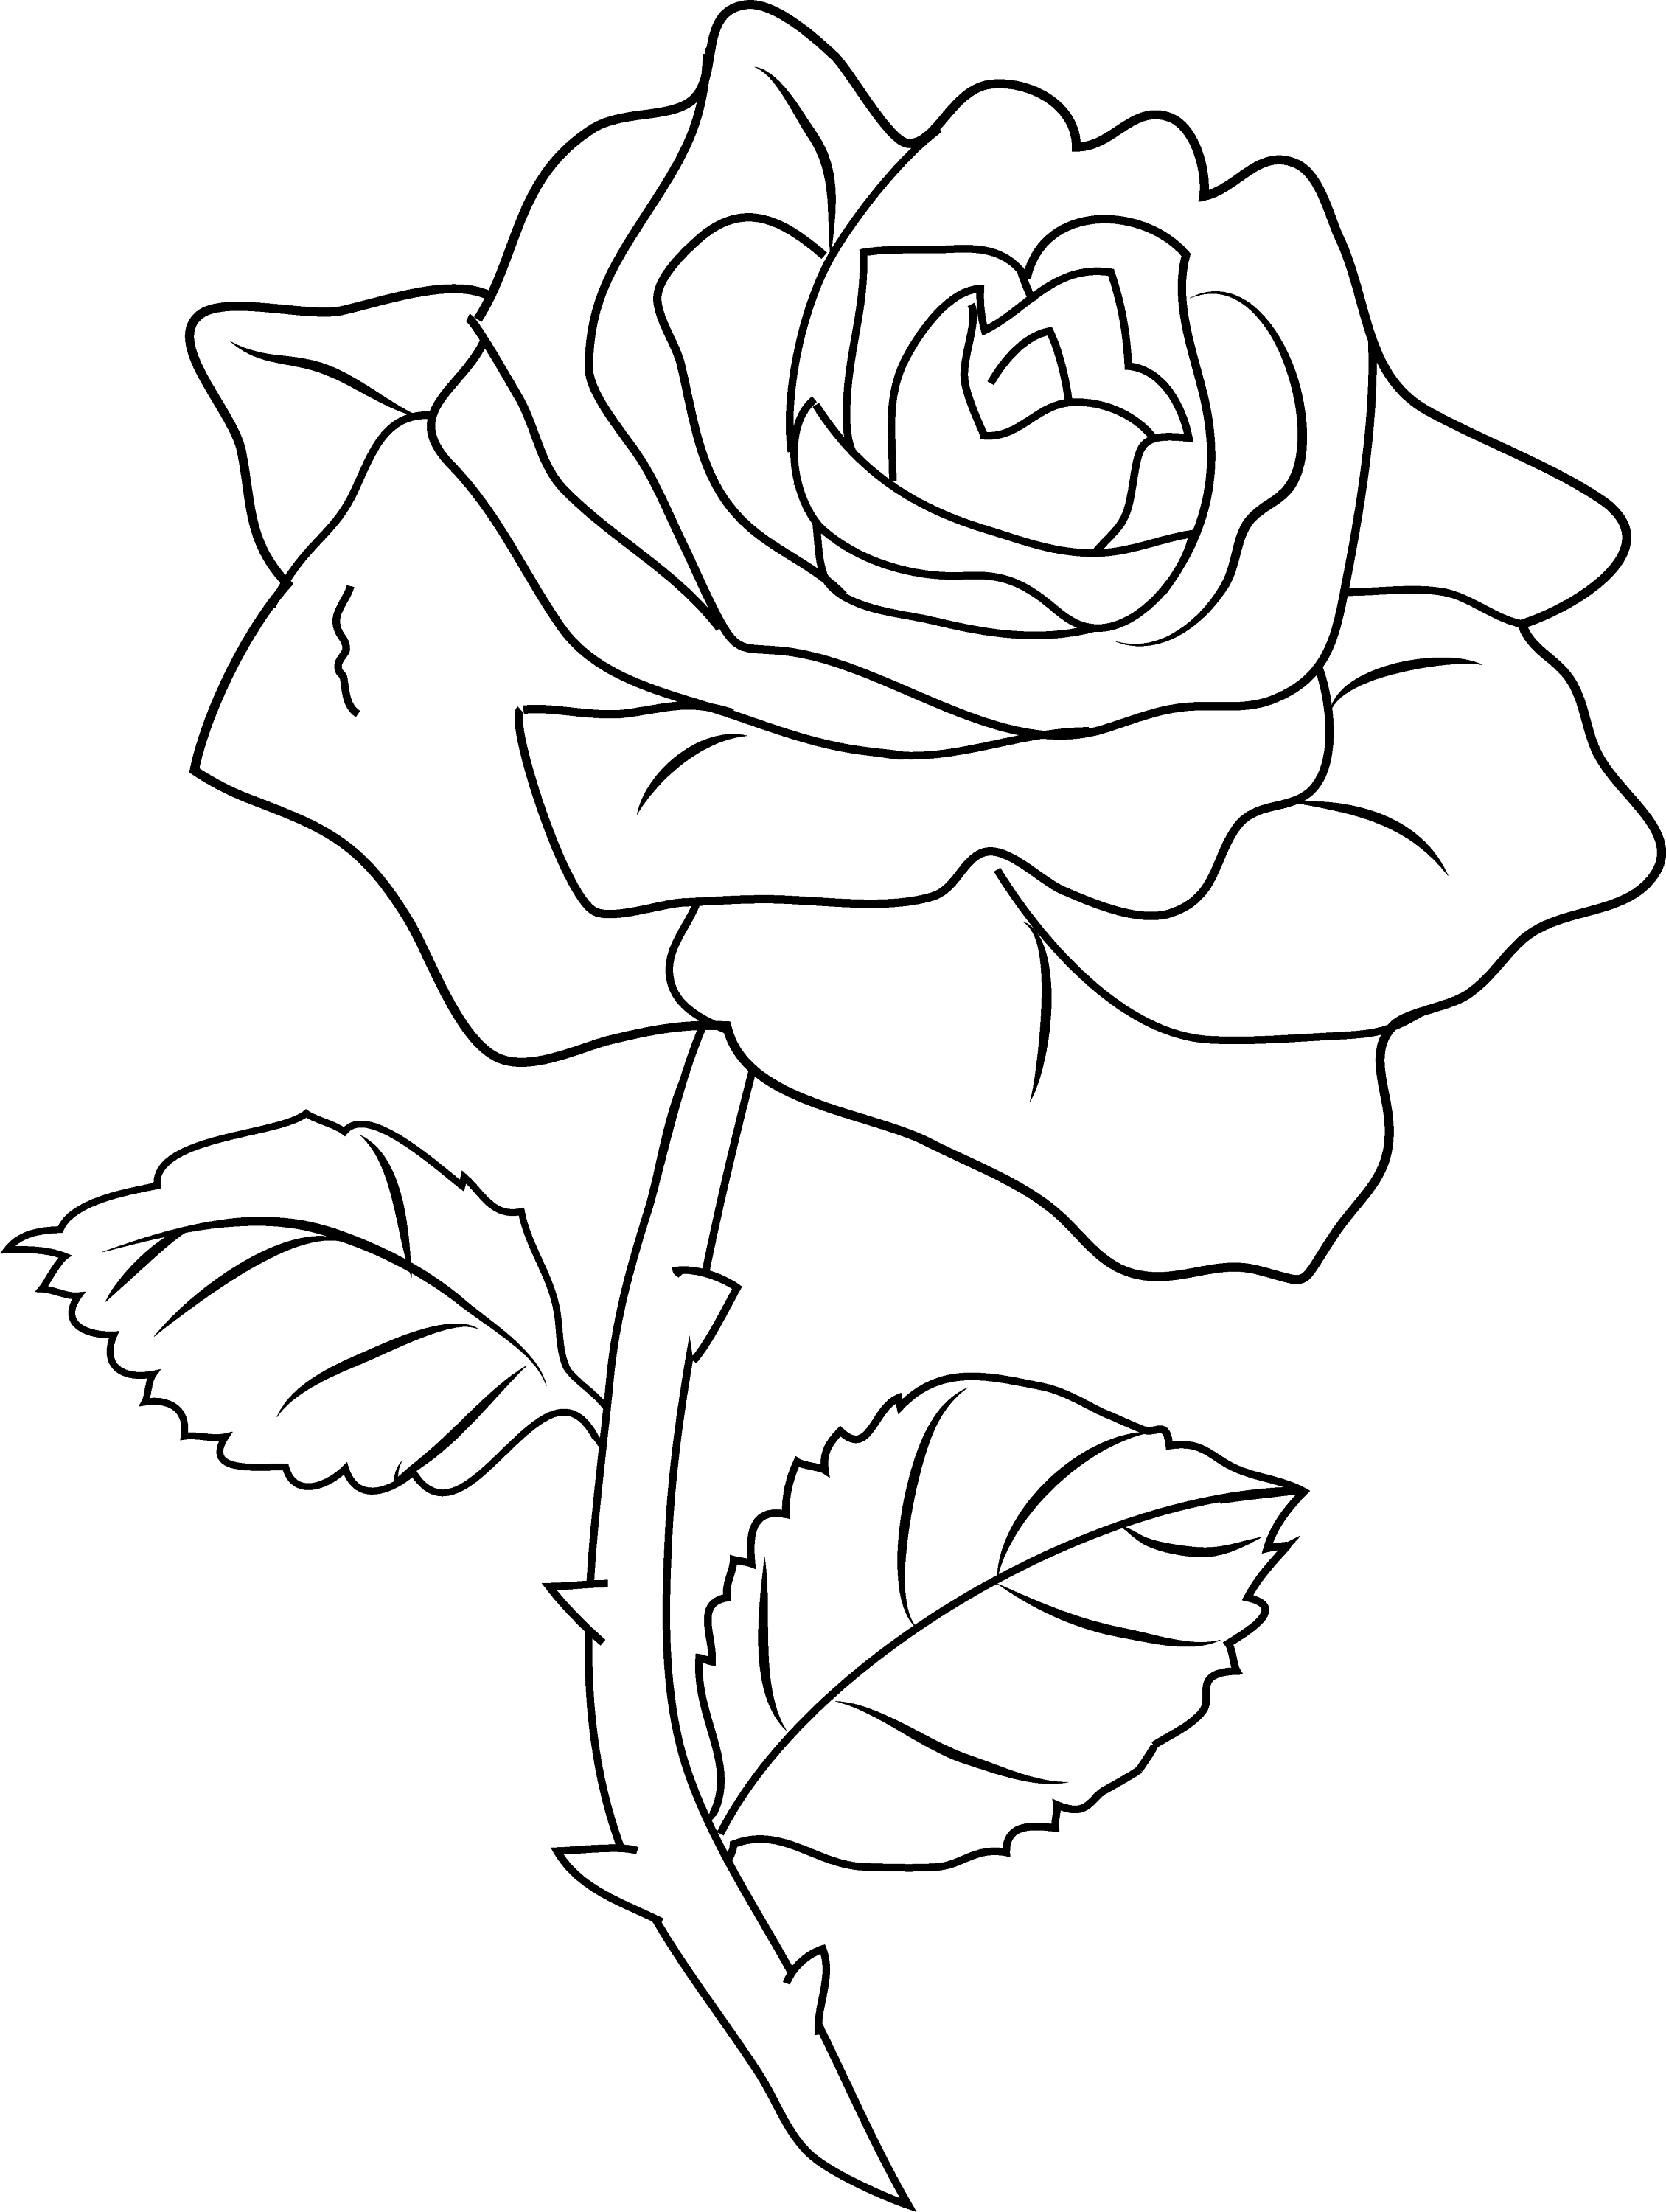 coloring outline images of flowers pretty rose coloring page free clip art of coloring outline flowers images